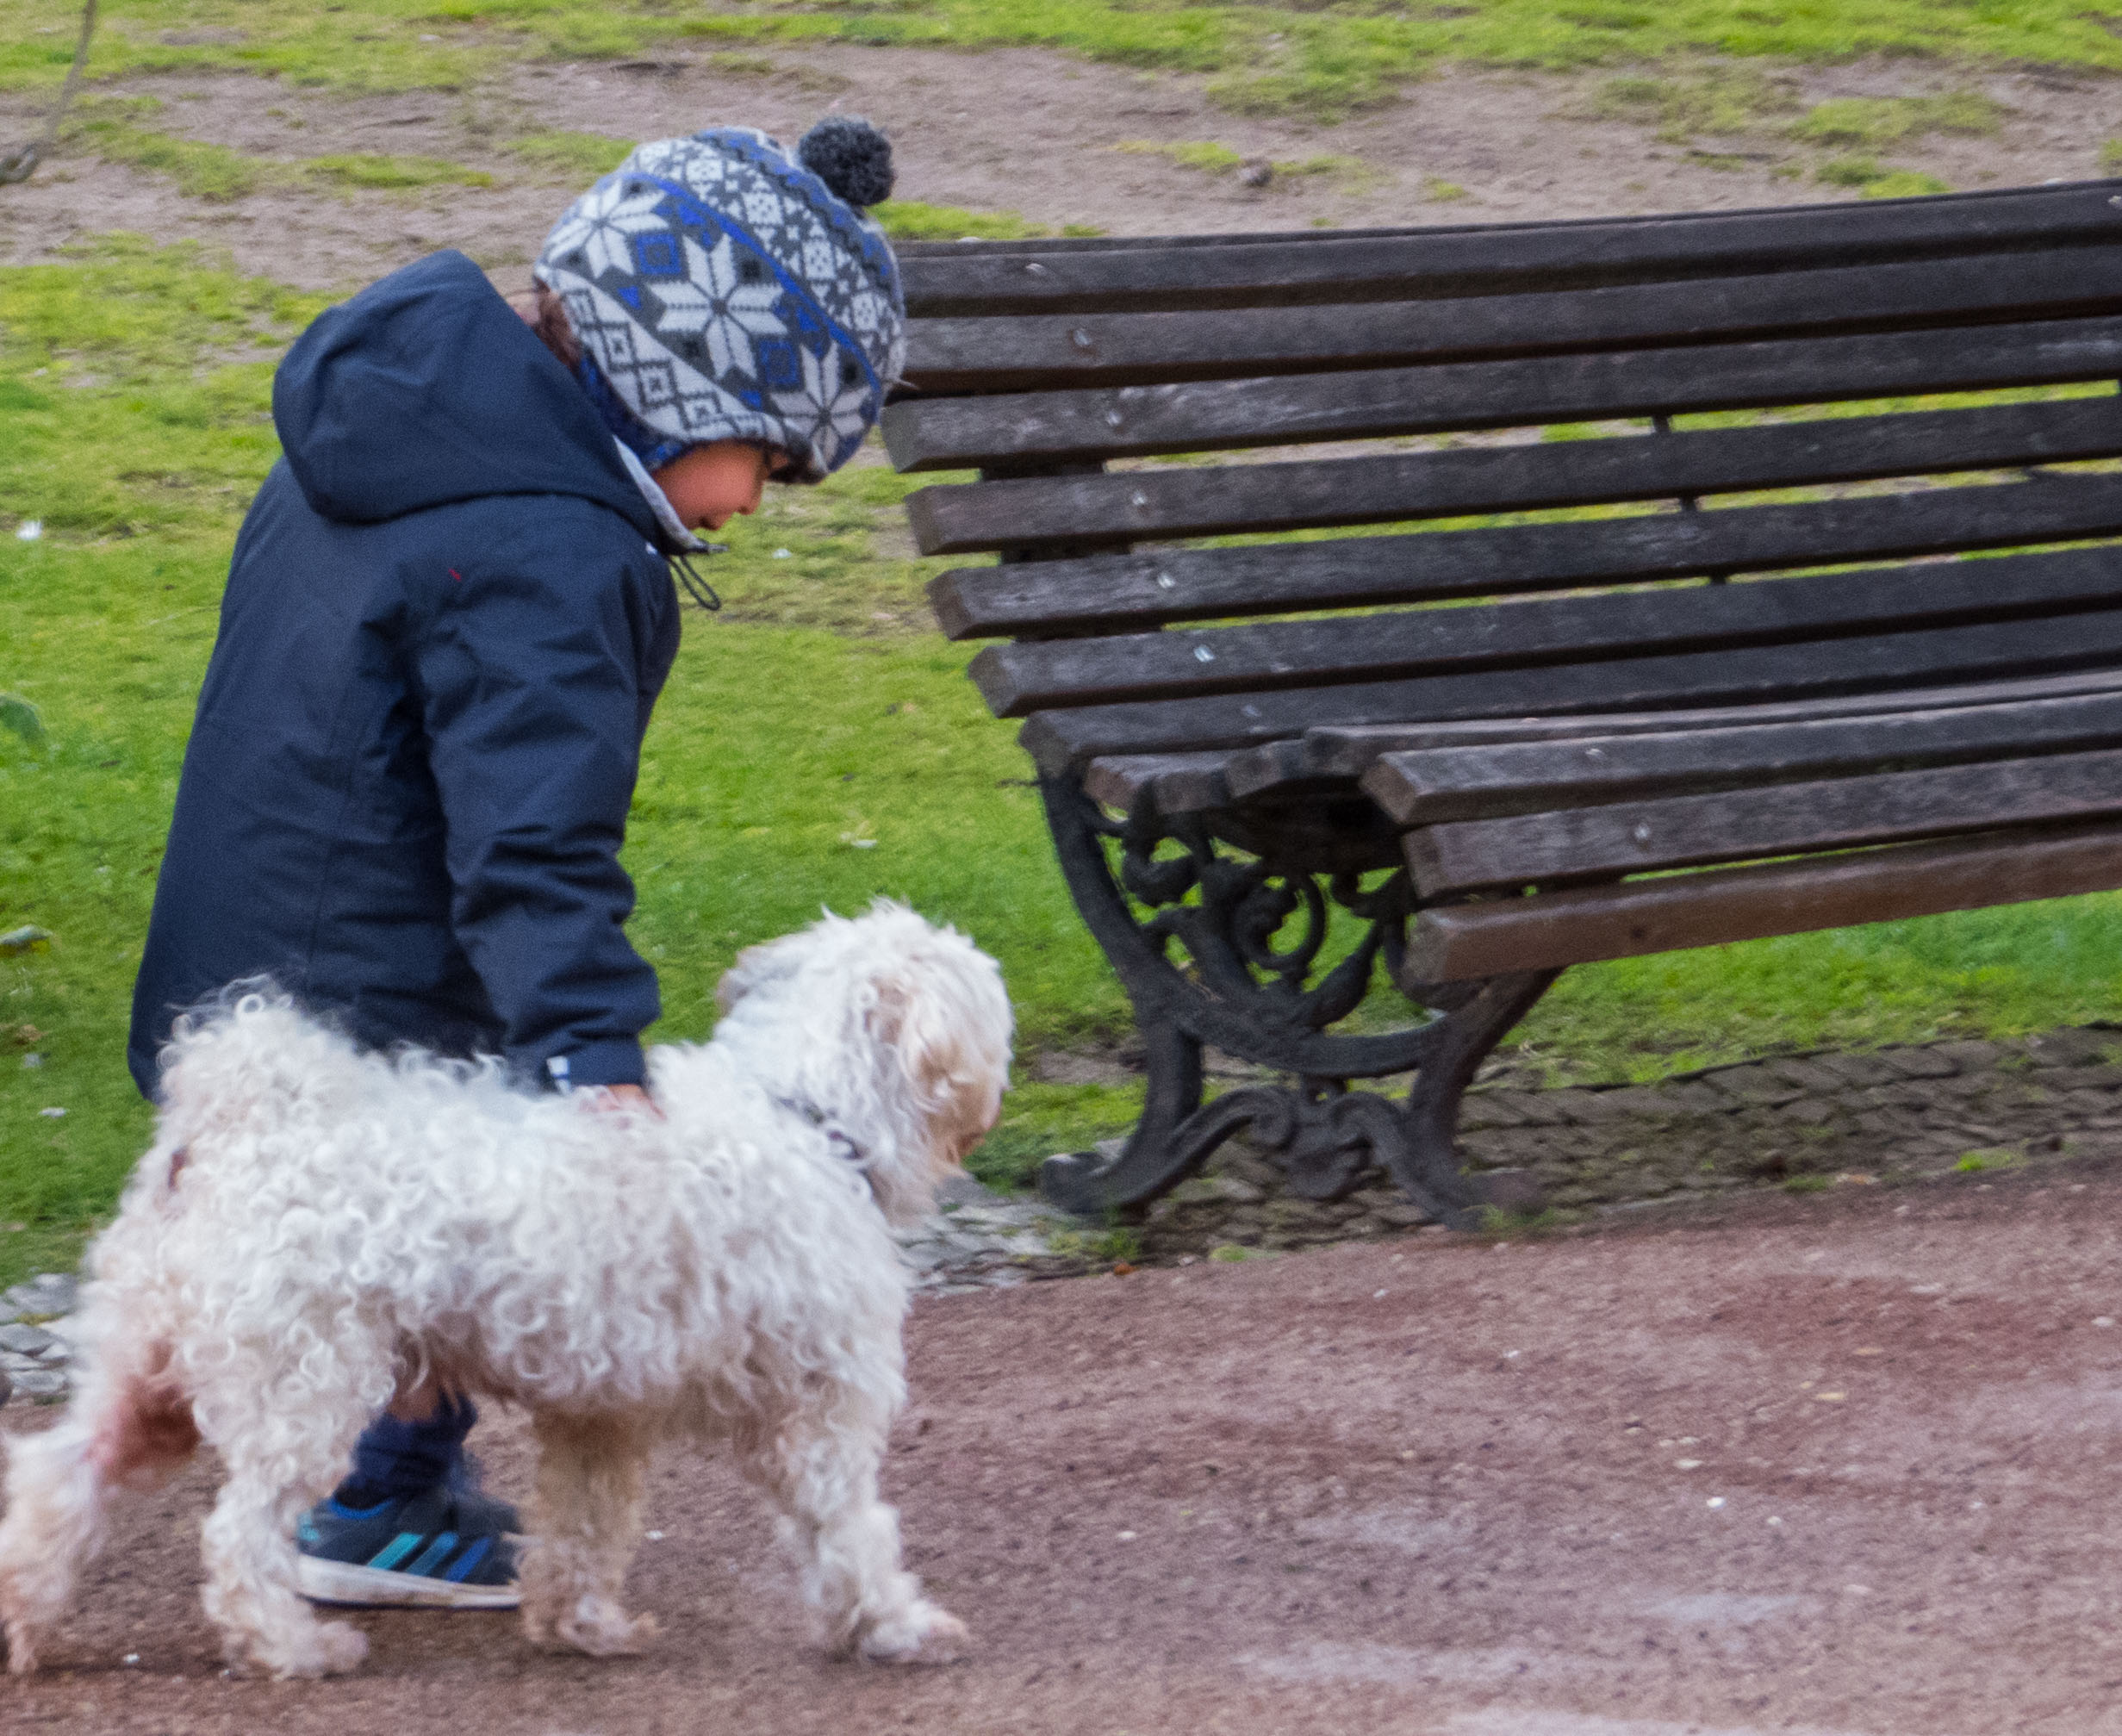 Kid with a puppy dog, People, Park, Portugal, Puppy, HQ Photo